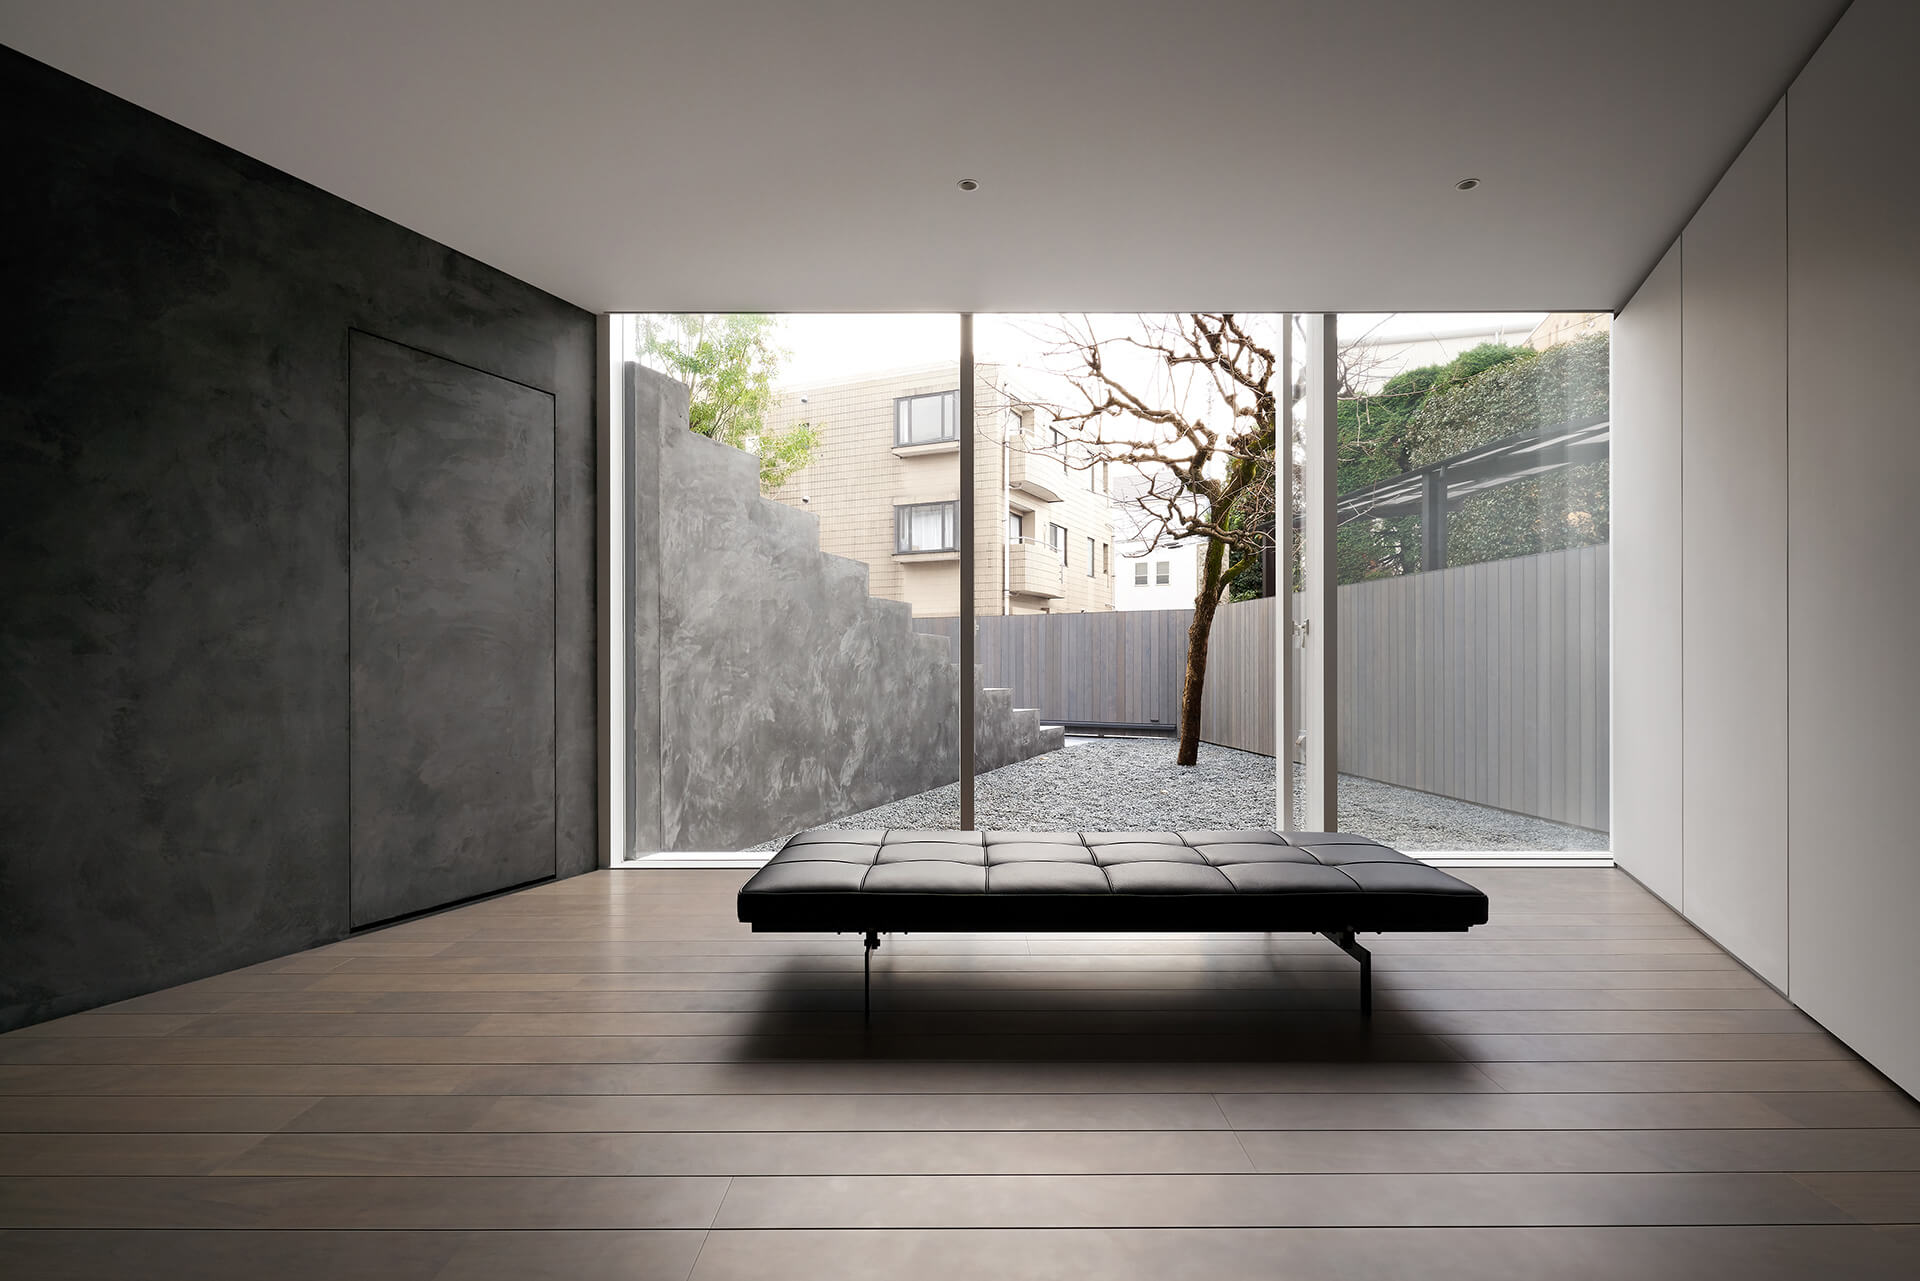 A solitary space on the ground floor overlooking the graveled yard | Tokyo | Nendo | STIRworld